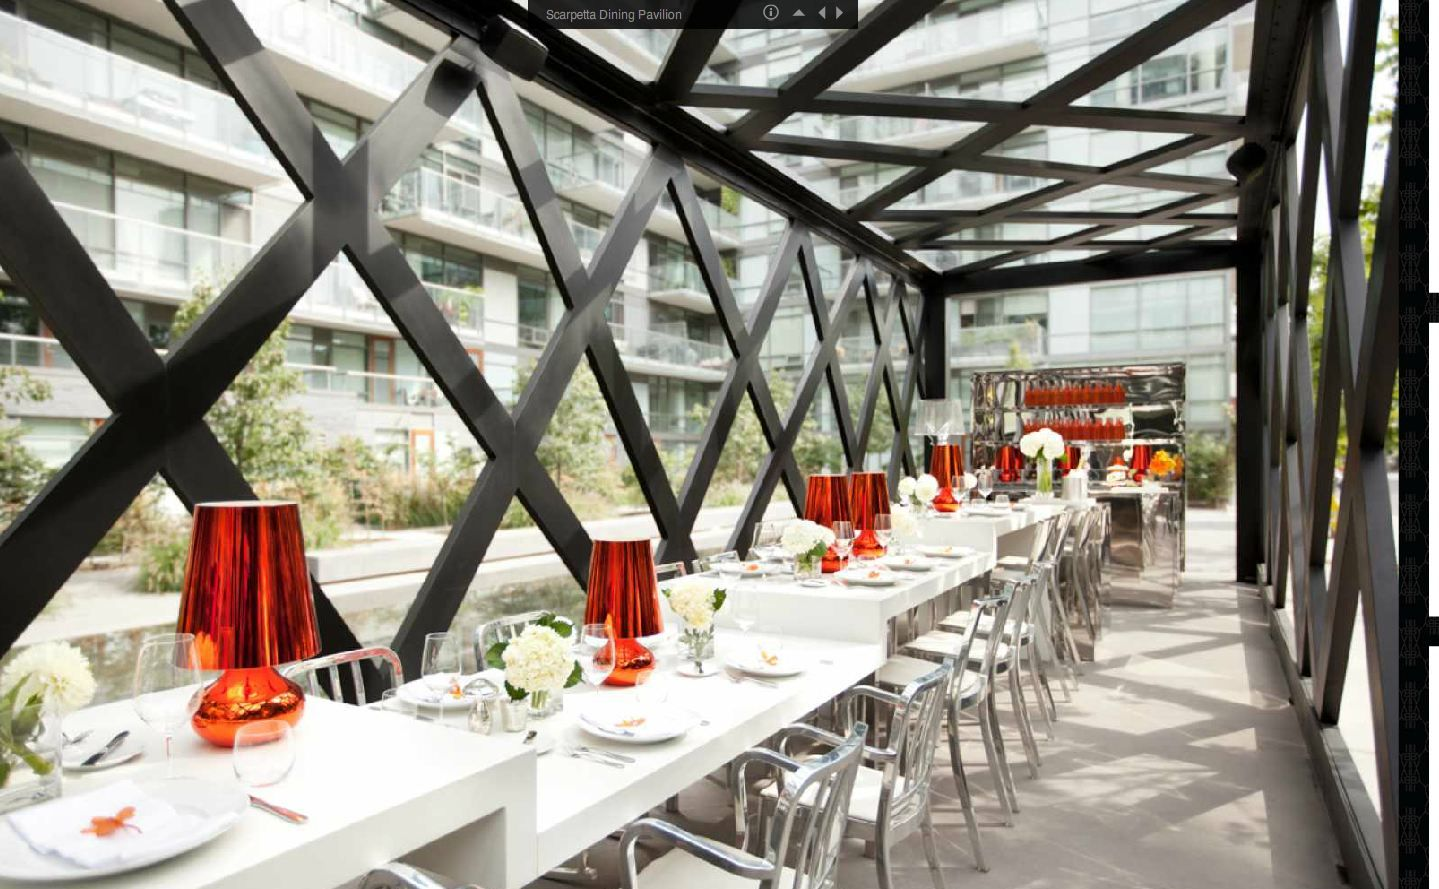 Scarpetta Dining Pavillion Restaurant And Bar Outdoor Dining Emco  9af605e372f2c3205282e6ee3fa932d0 203365739394207338. Outdoor Restaurant  Seating Ideas ...